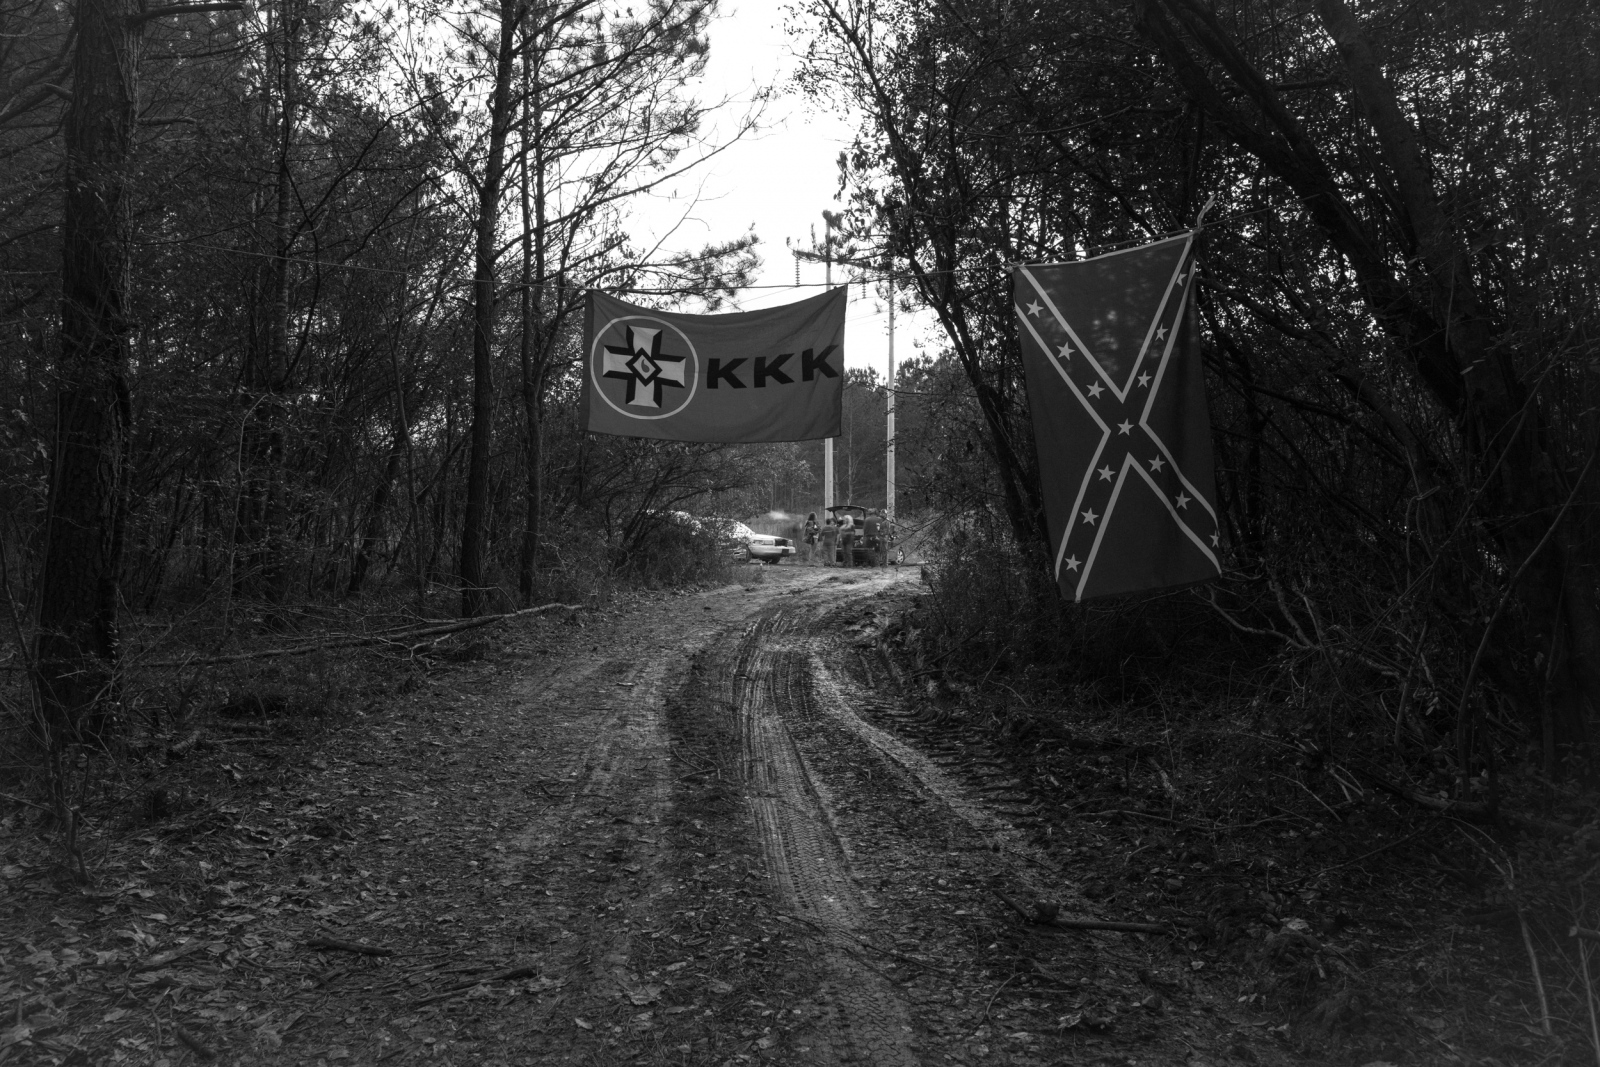 Trion, Georgia. A small impromptu gathering of a newly formed Klan group.